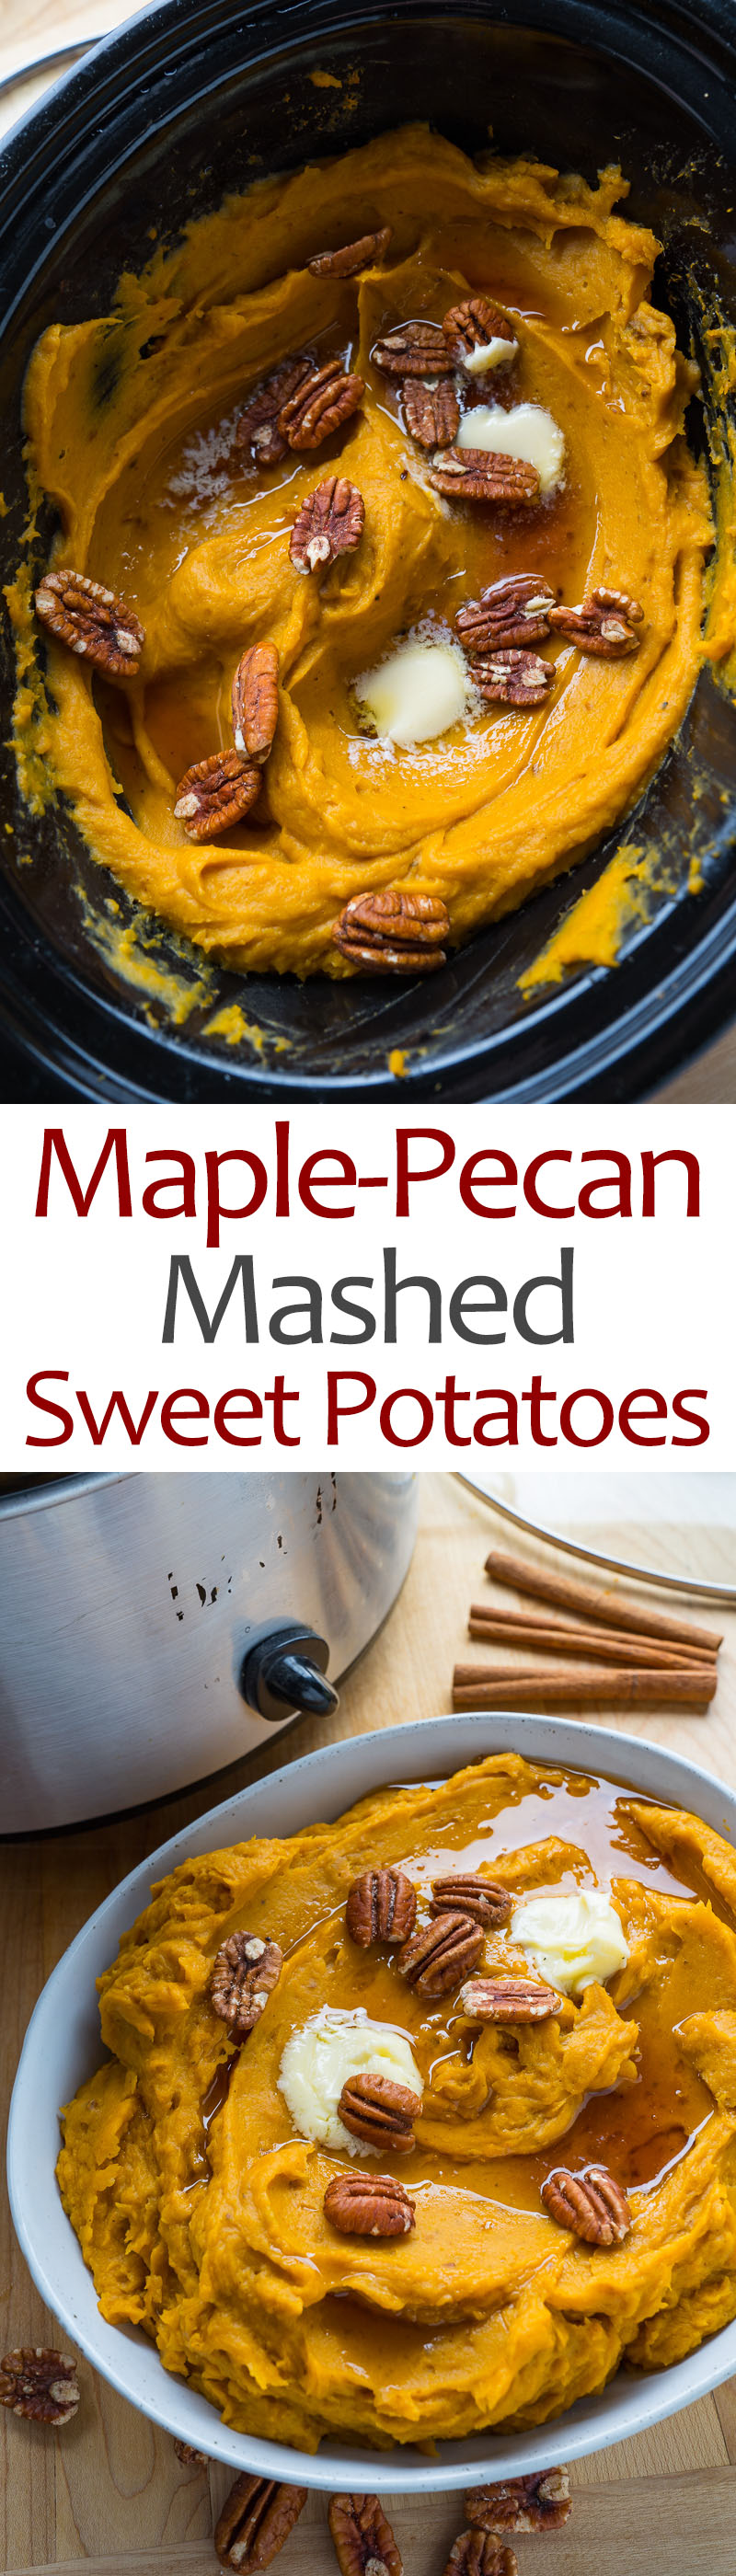 Slow Cooker Maple-Pecan Mashed Sweet Potatoes